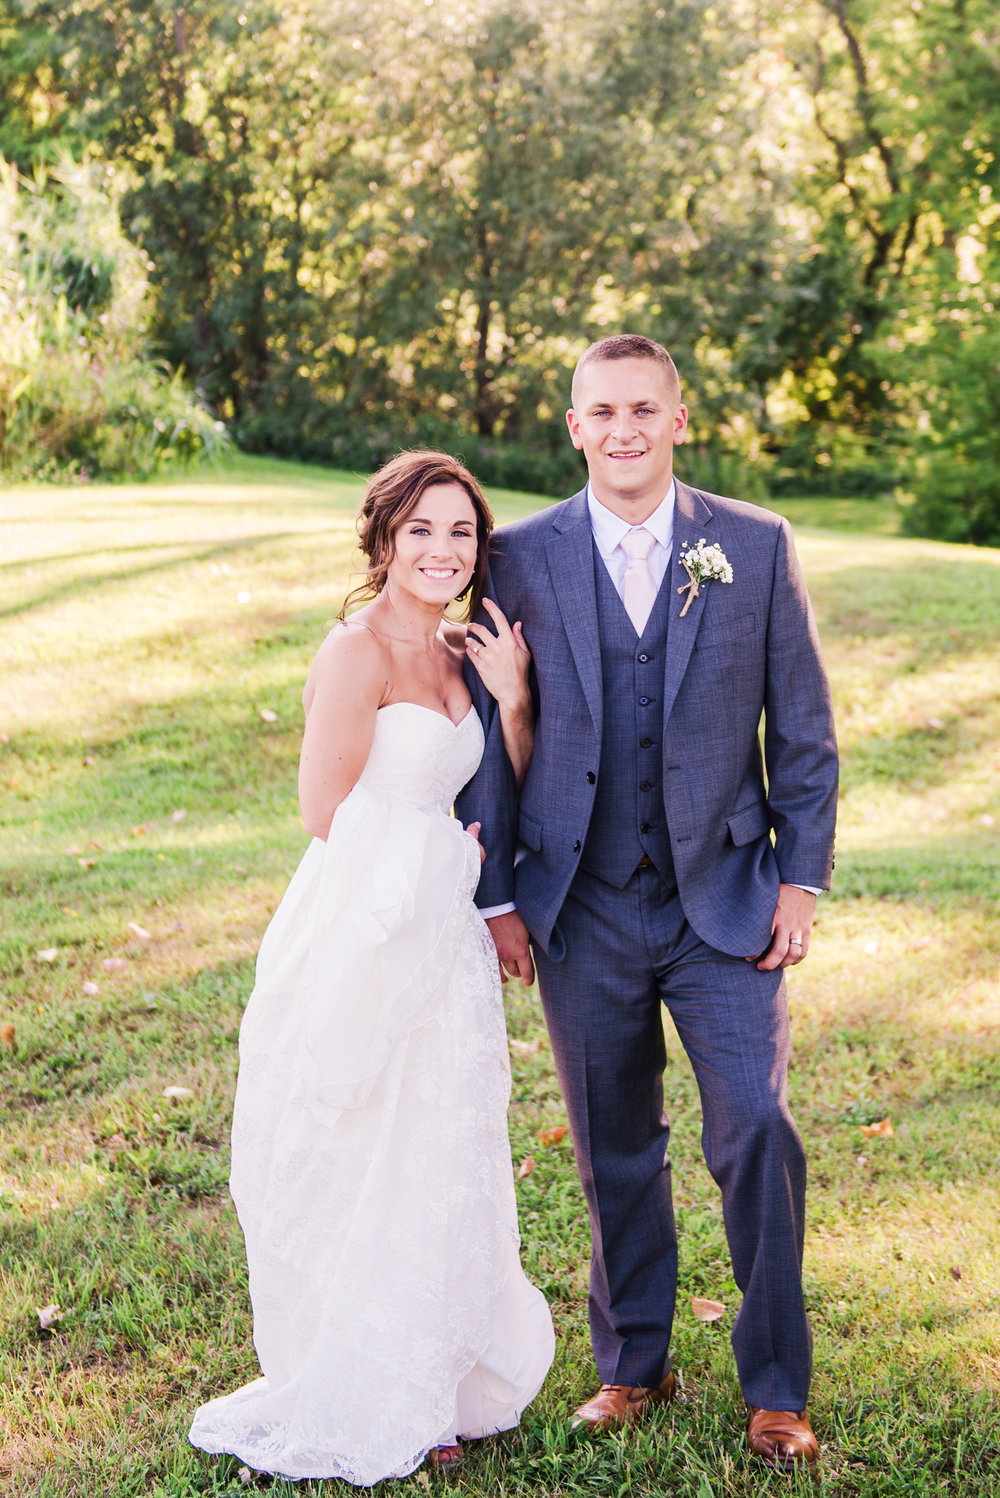 Wolf_Oak_Acres_Central_NY_Wedding_JILL_STUDIO_Rochester_NY_Photographer_DSC_5445.jpg